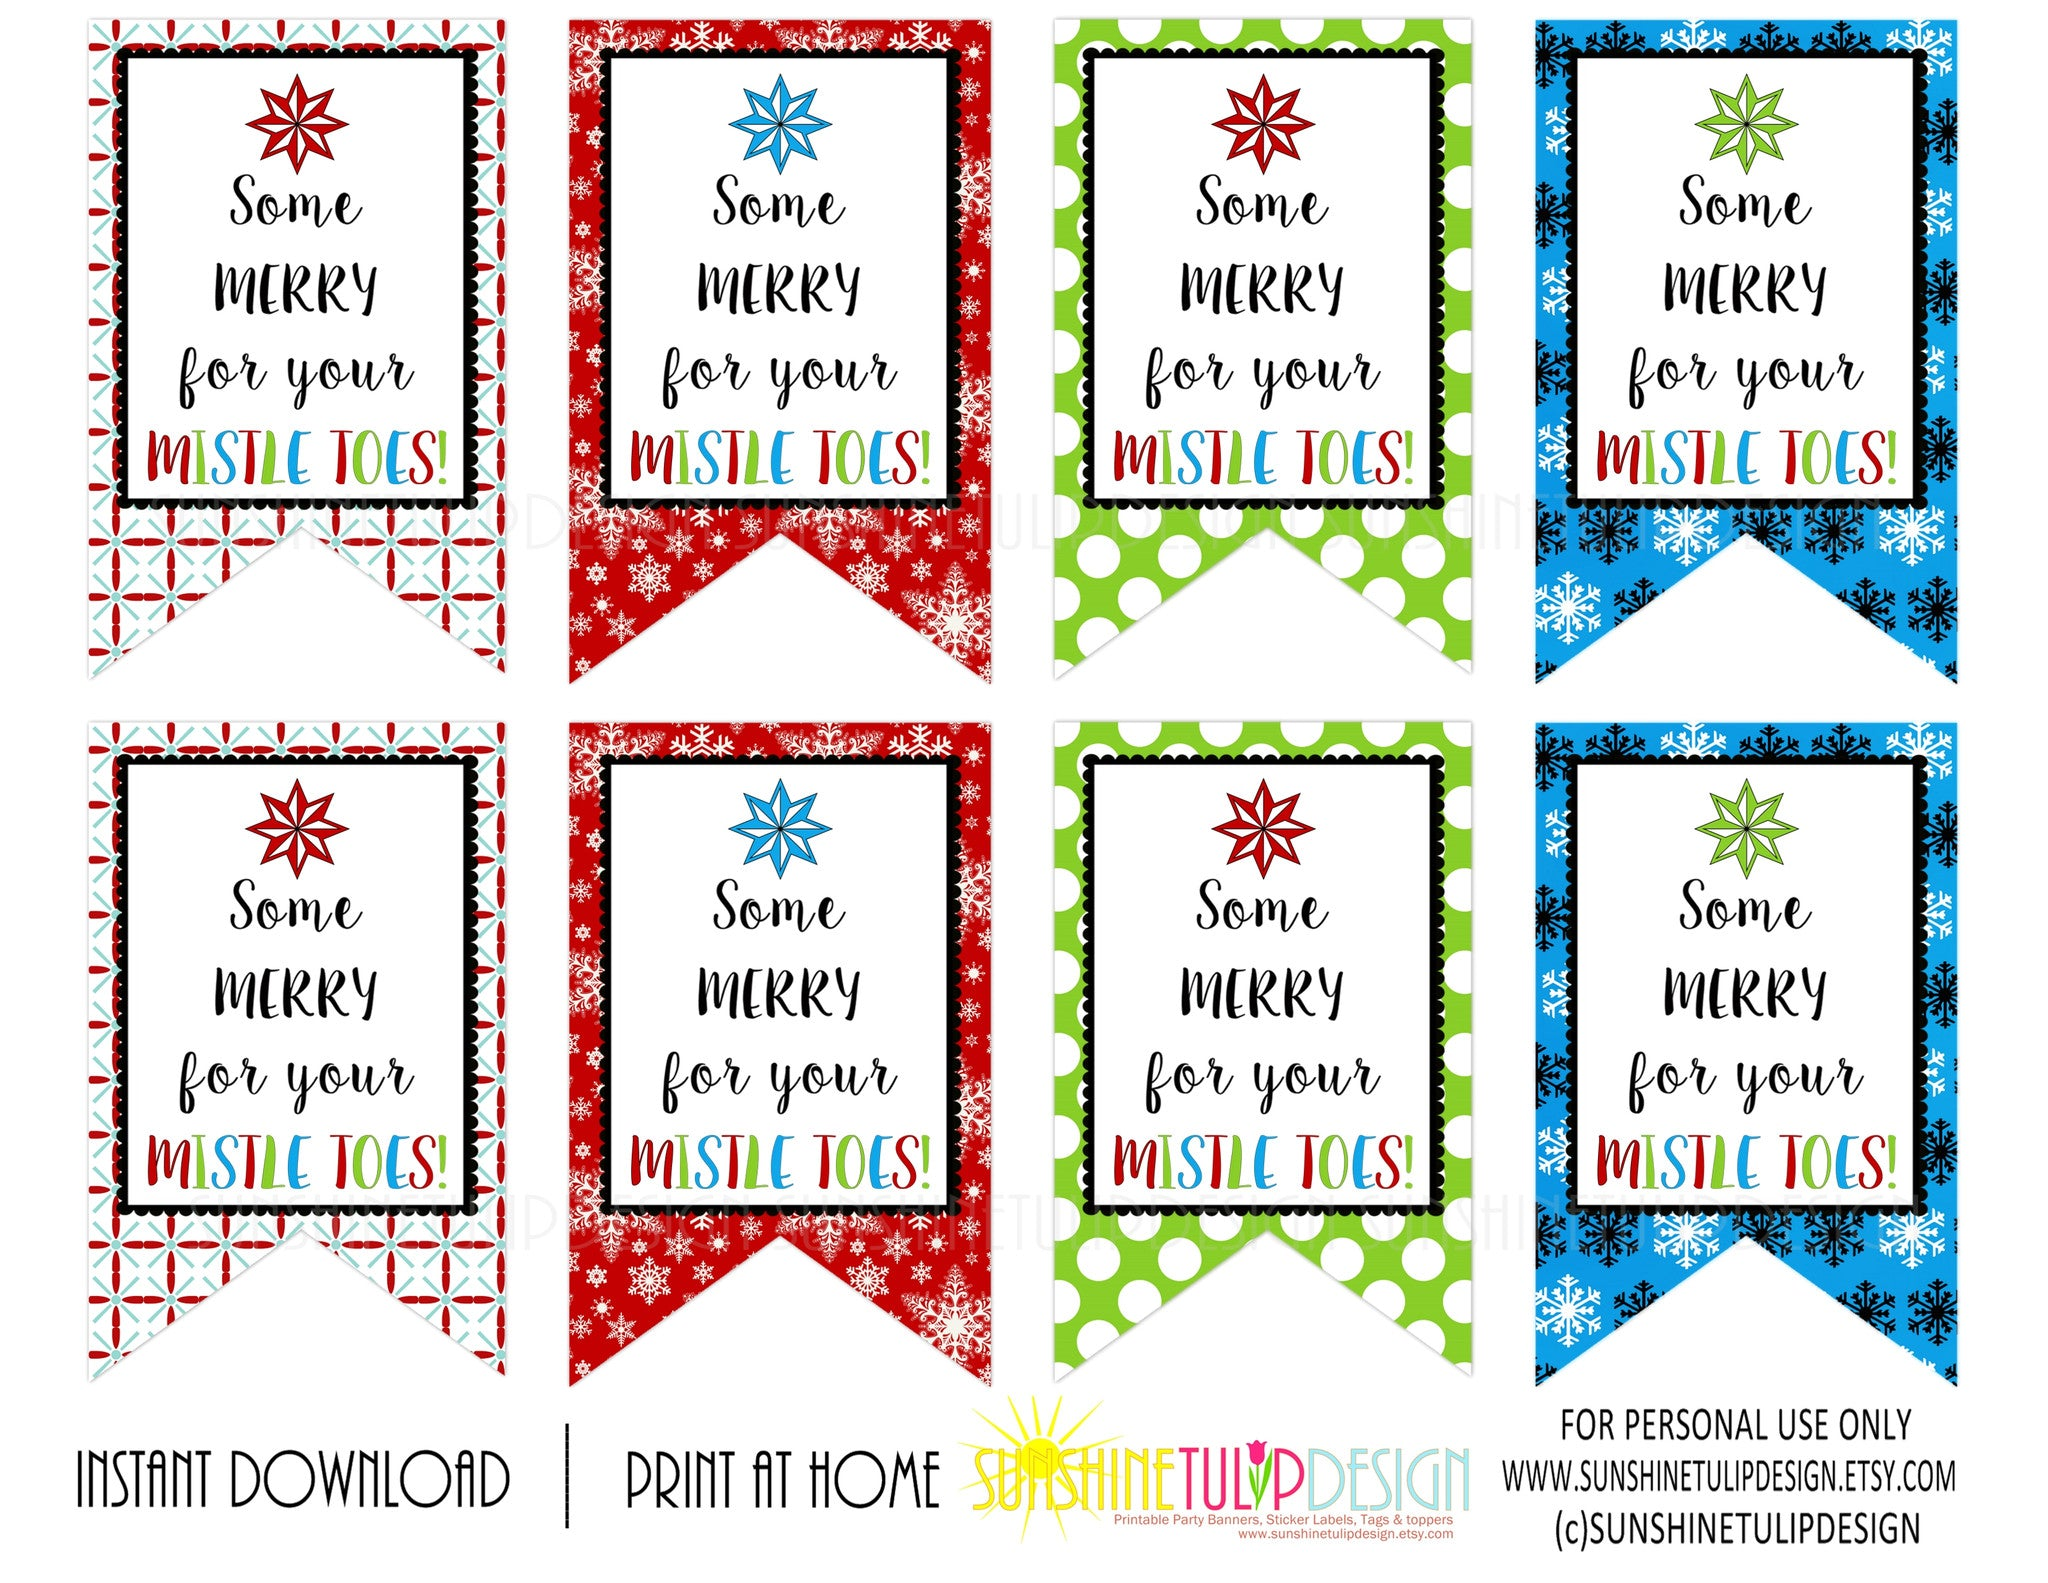 image relating to Printable Gift Labels referred to as Printable Trainer Appreciation tags, For Your Mistletoes Present Tags, Nail Polish Reward Tags through SUNSHINETULIPDESIGN